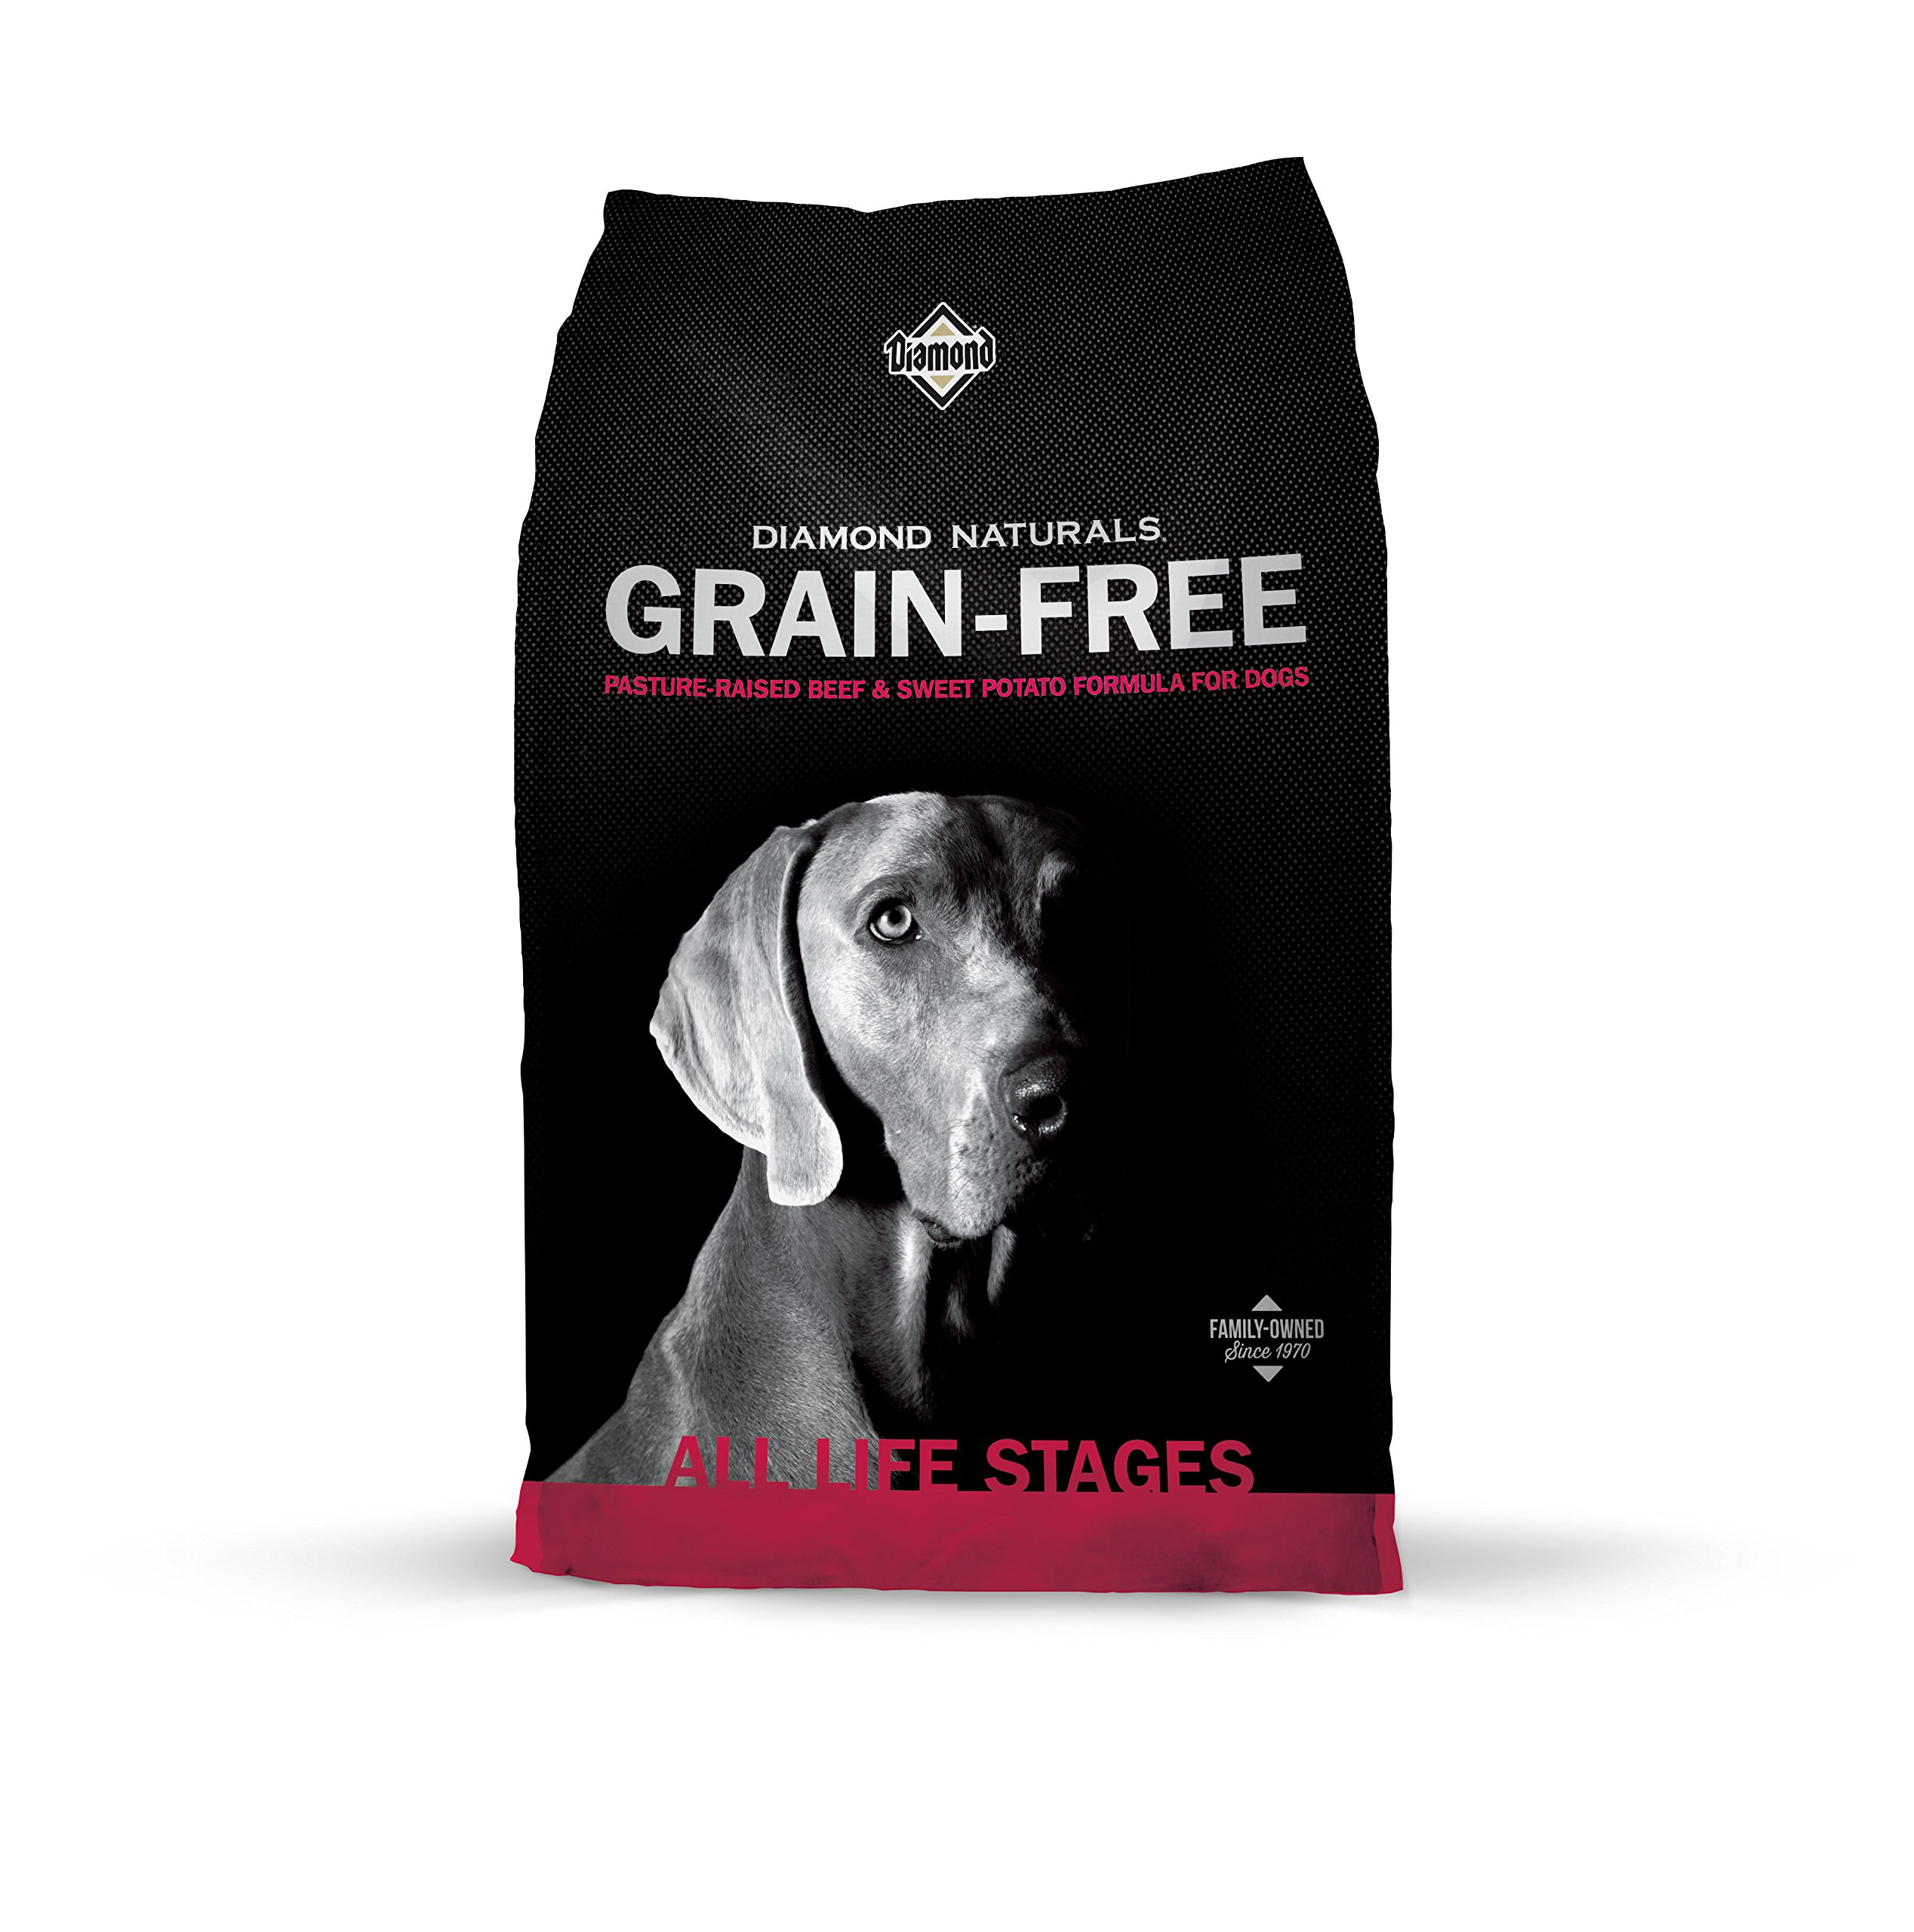 Diamond Naturals Grain Free Real Meat Recipe Dry Dog Food with Natural Ingredients